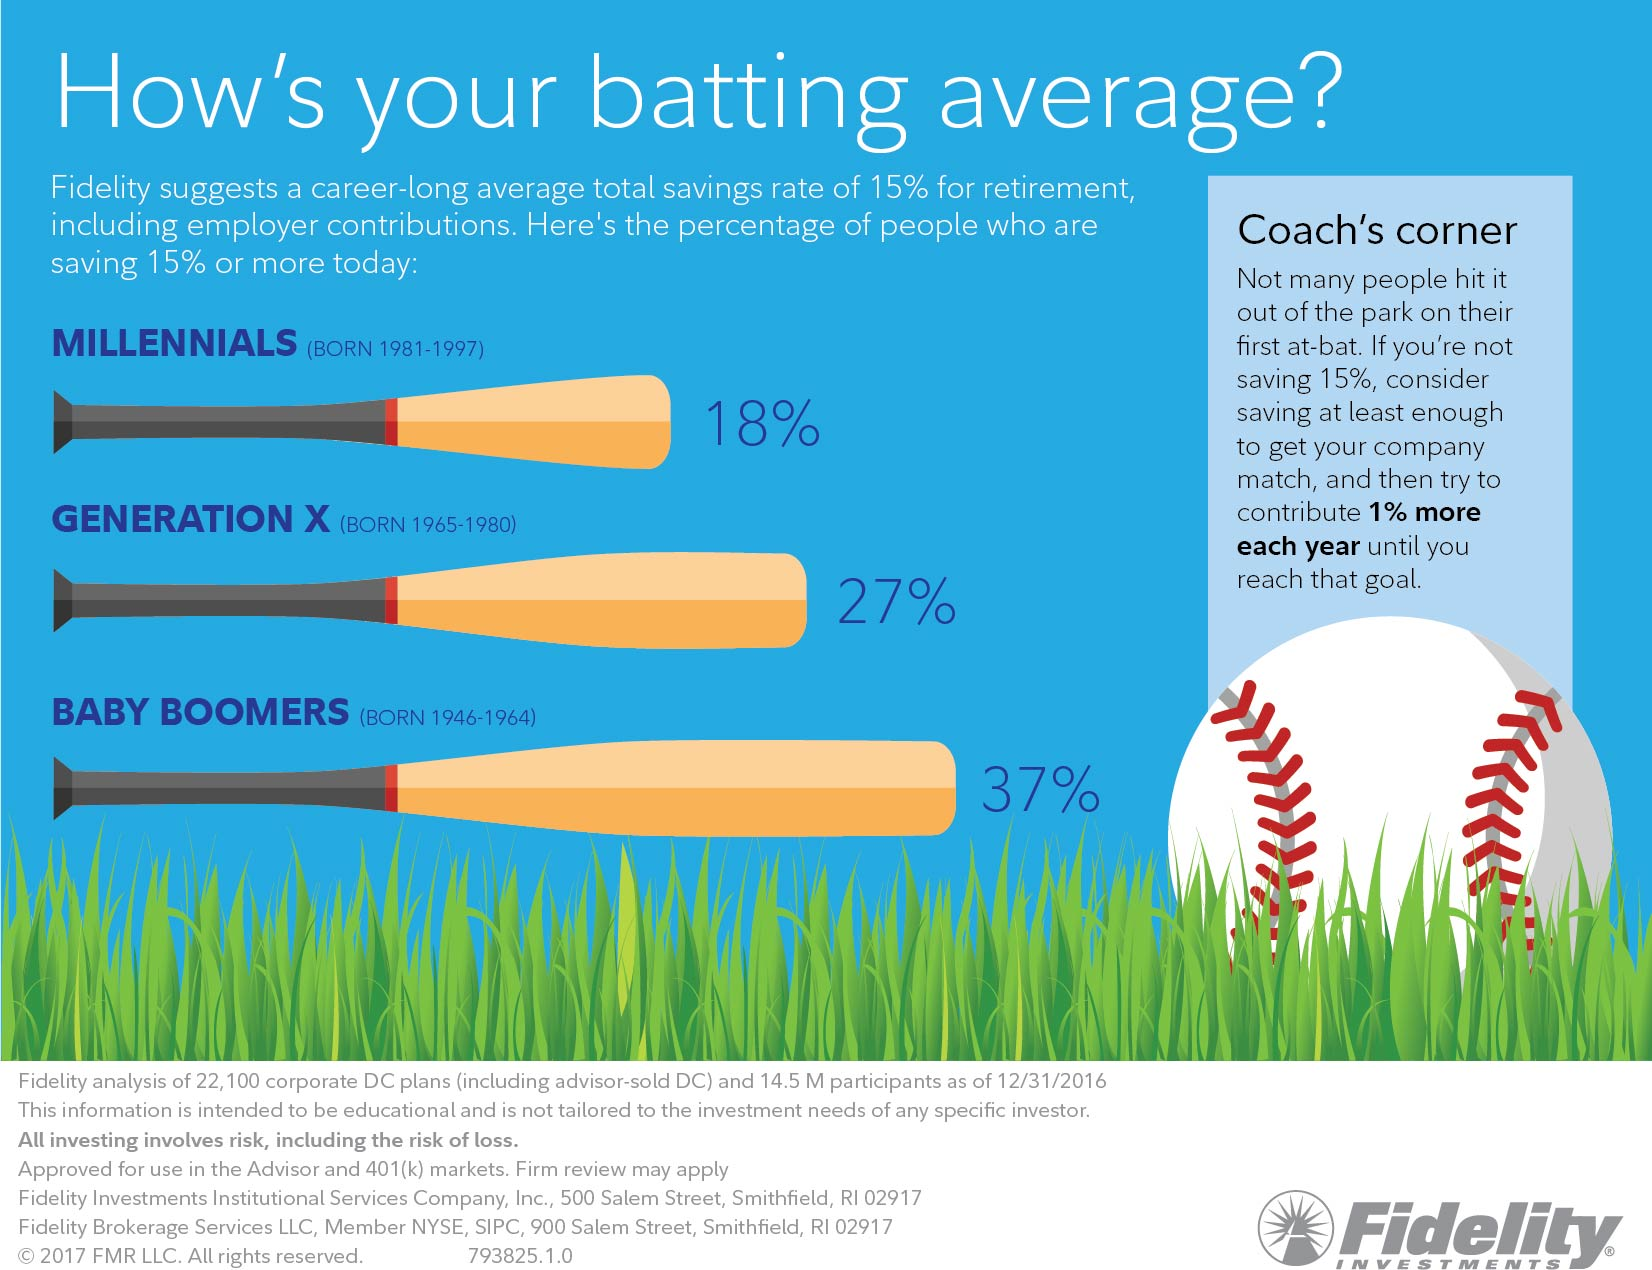 How's your batting average?  Not many people hit it out of the park on their first at-bat. If you're not saving 15%, consider saving at least enough to get your company match.